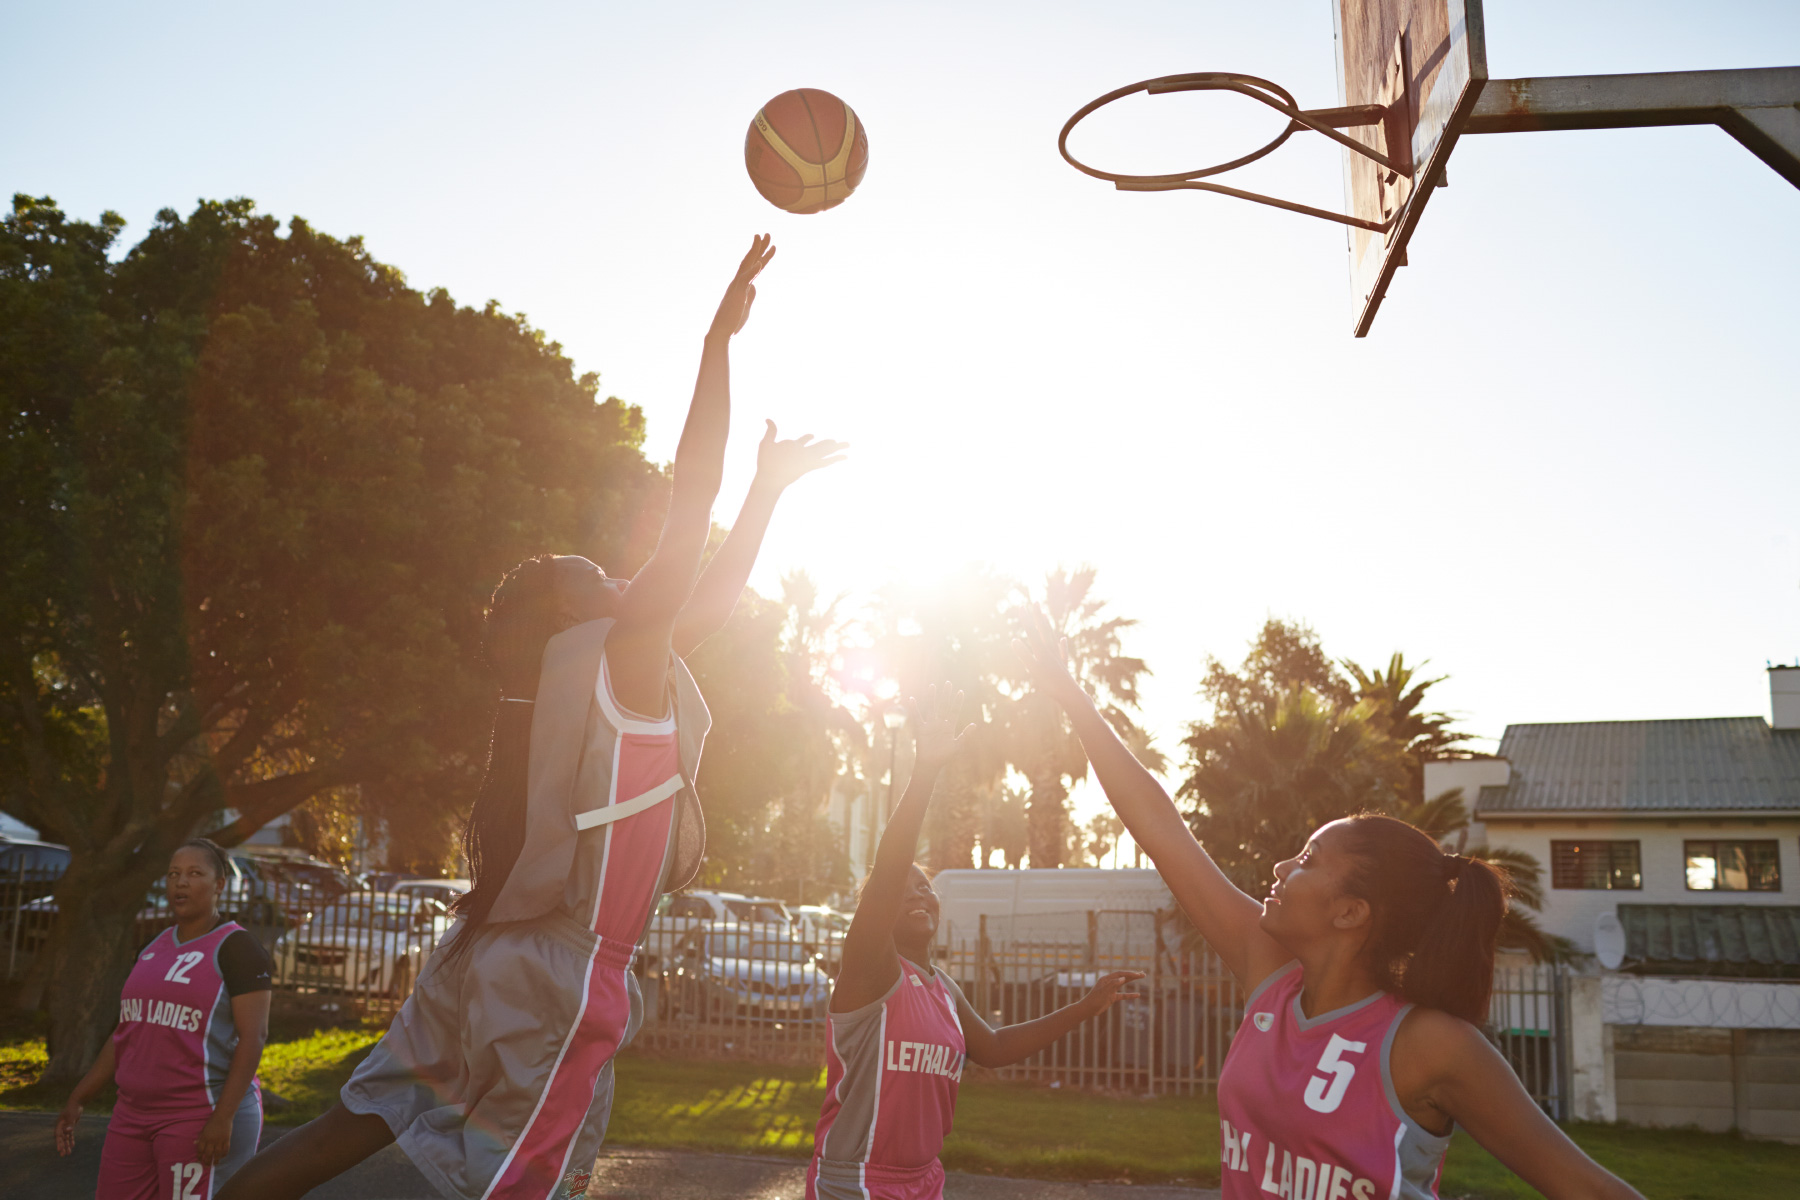 Female amateur basket team scoring goal at sunset